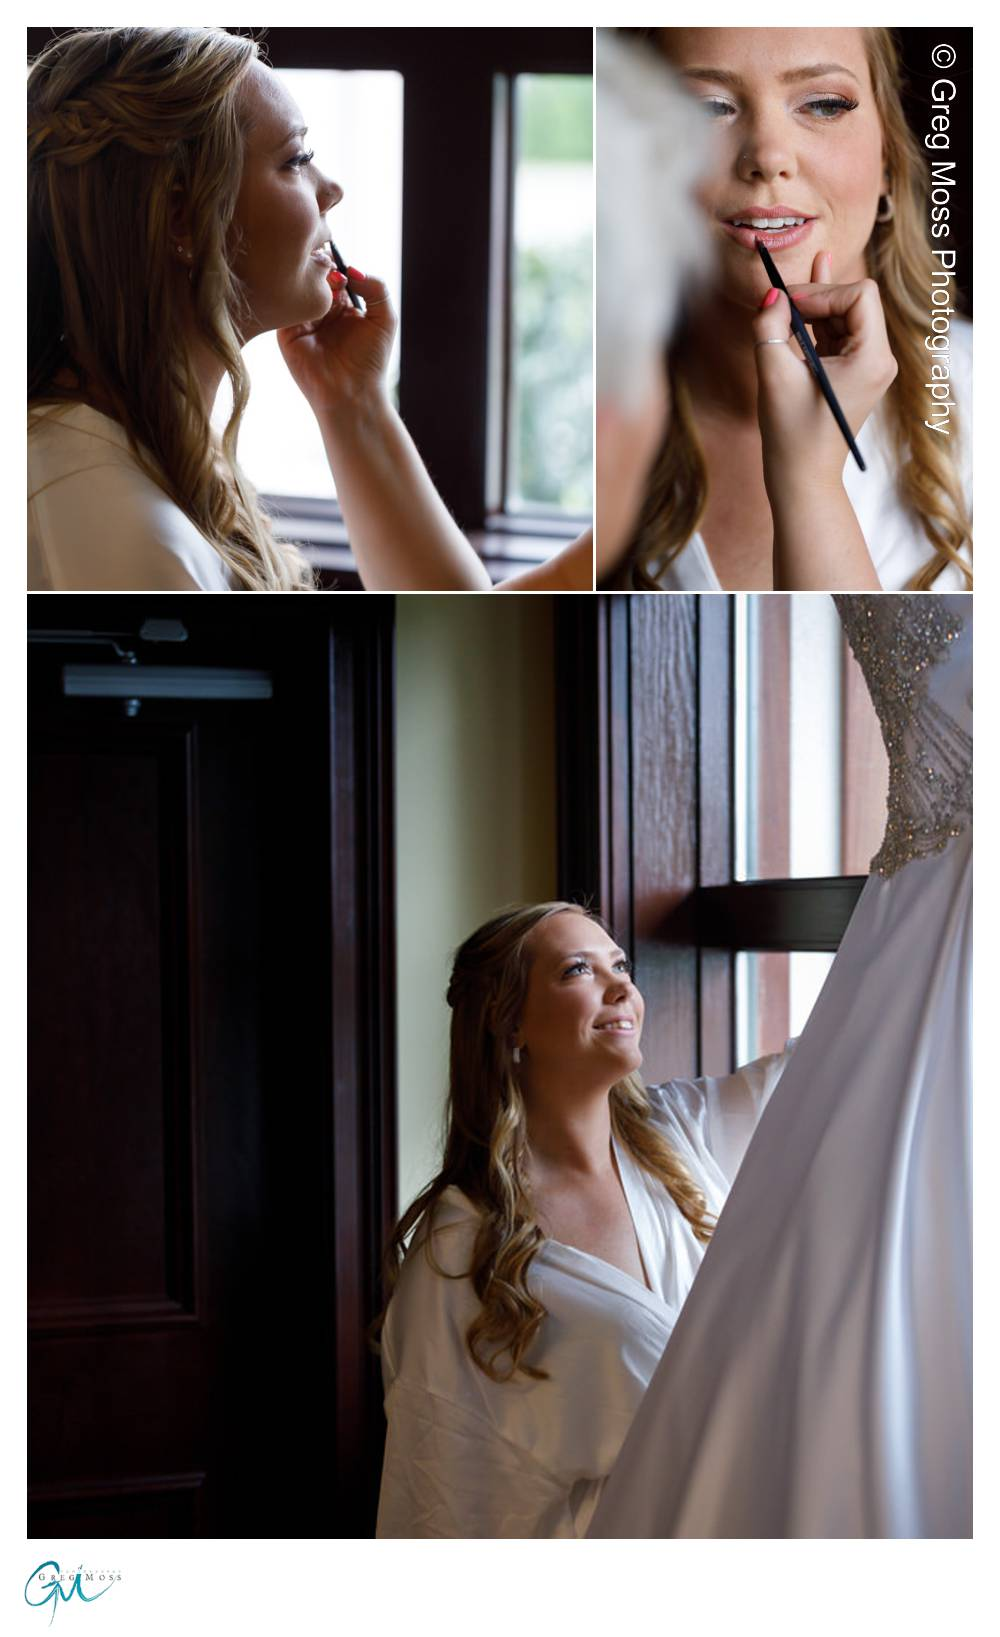 Bride viewing dress before during getting ready and photos of makeup being applied